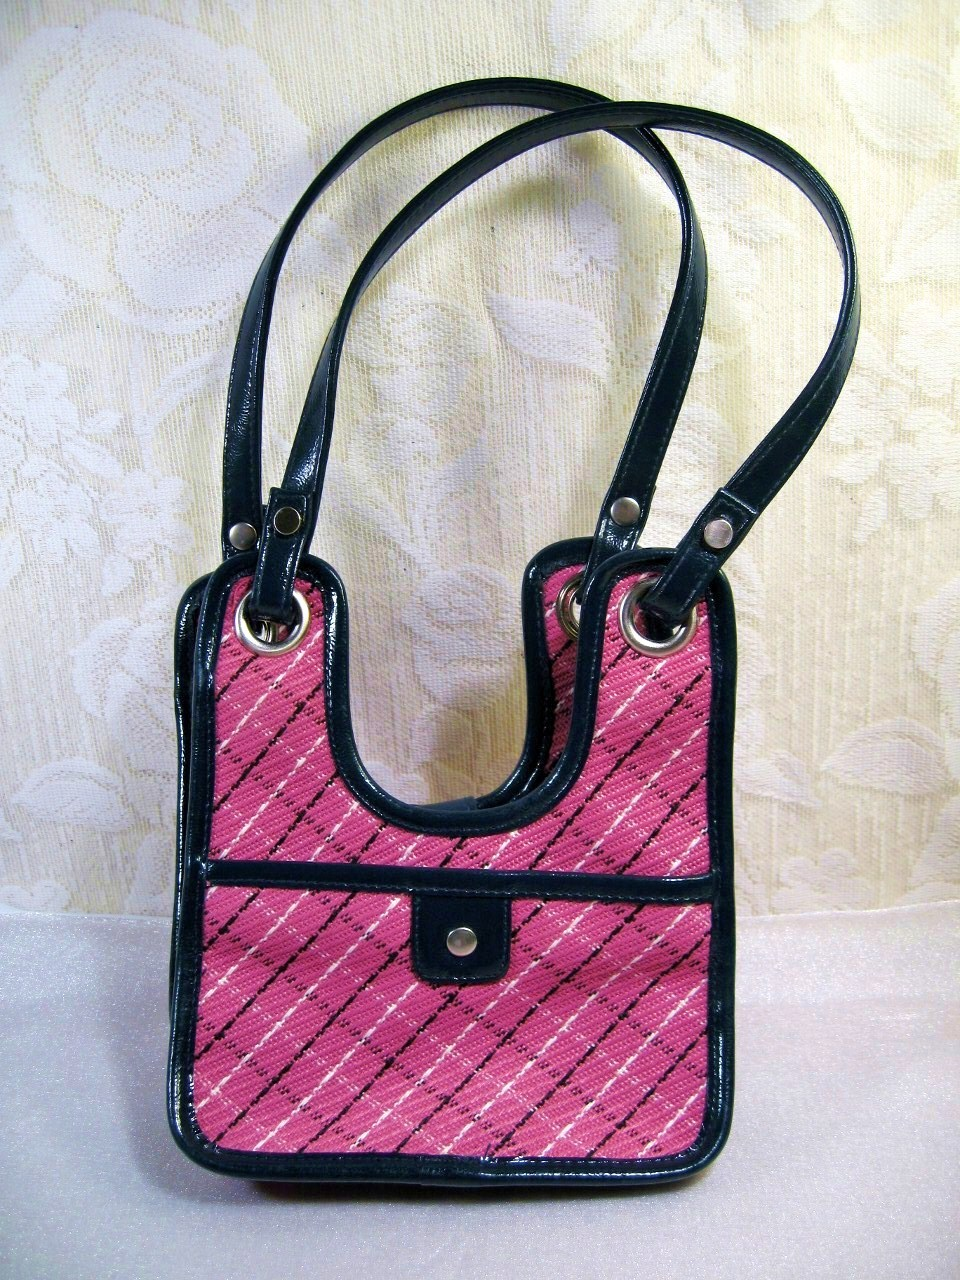 DKNY PINK/BLUE STRAPS leatherTRIM lady SMALL HAND BAG/ PURSE